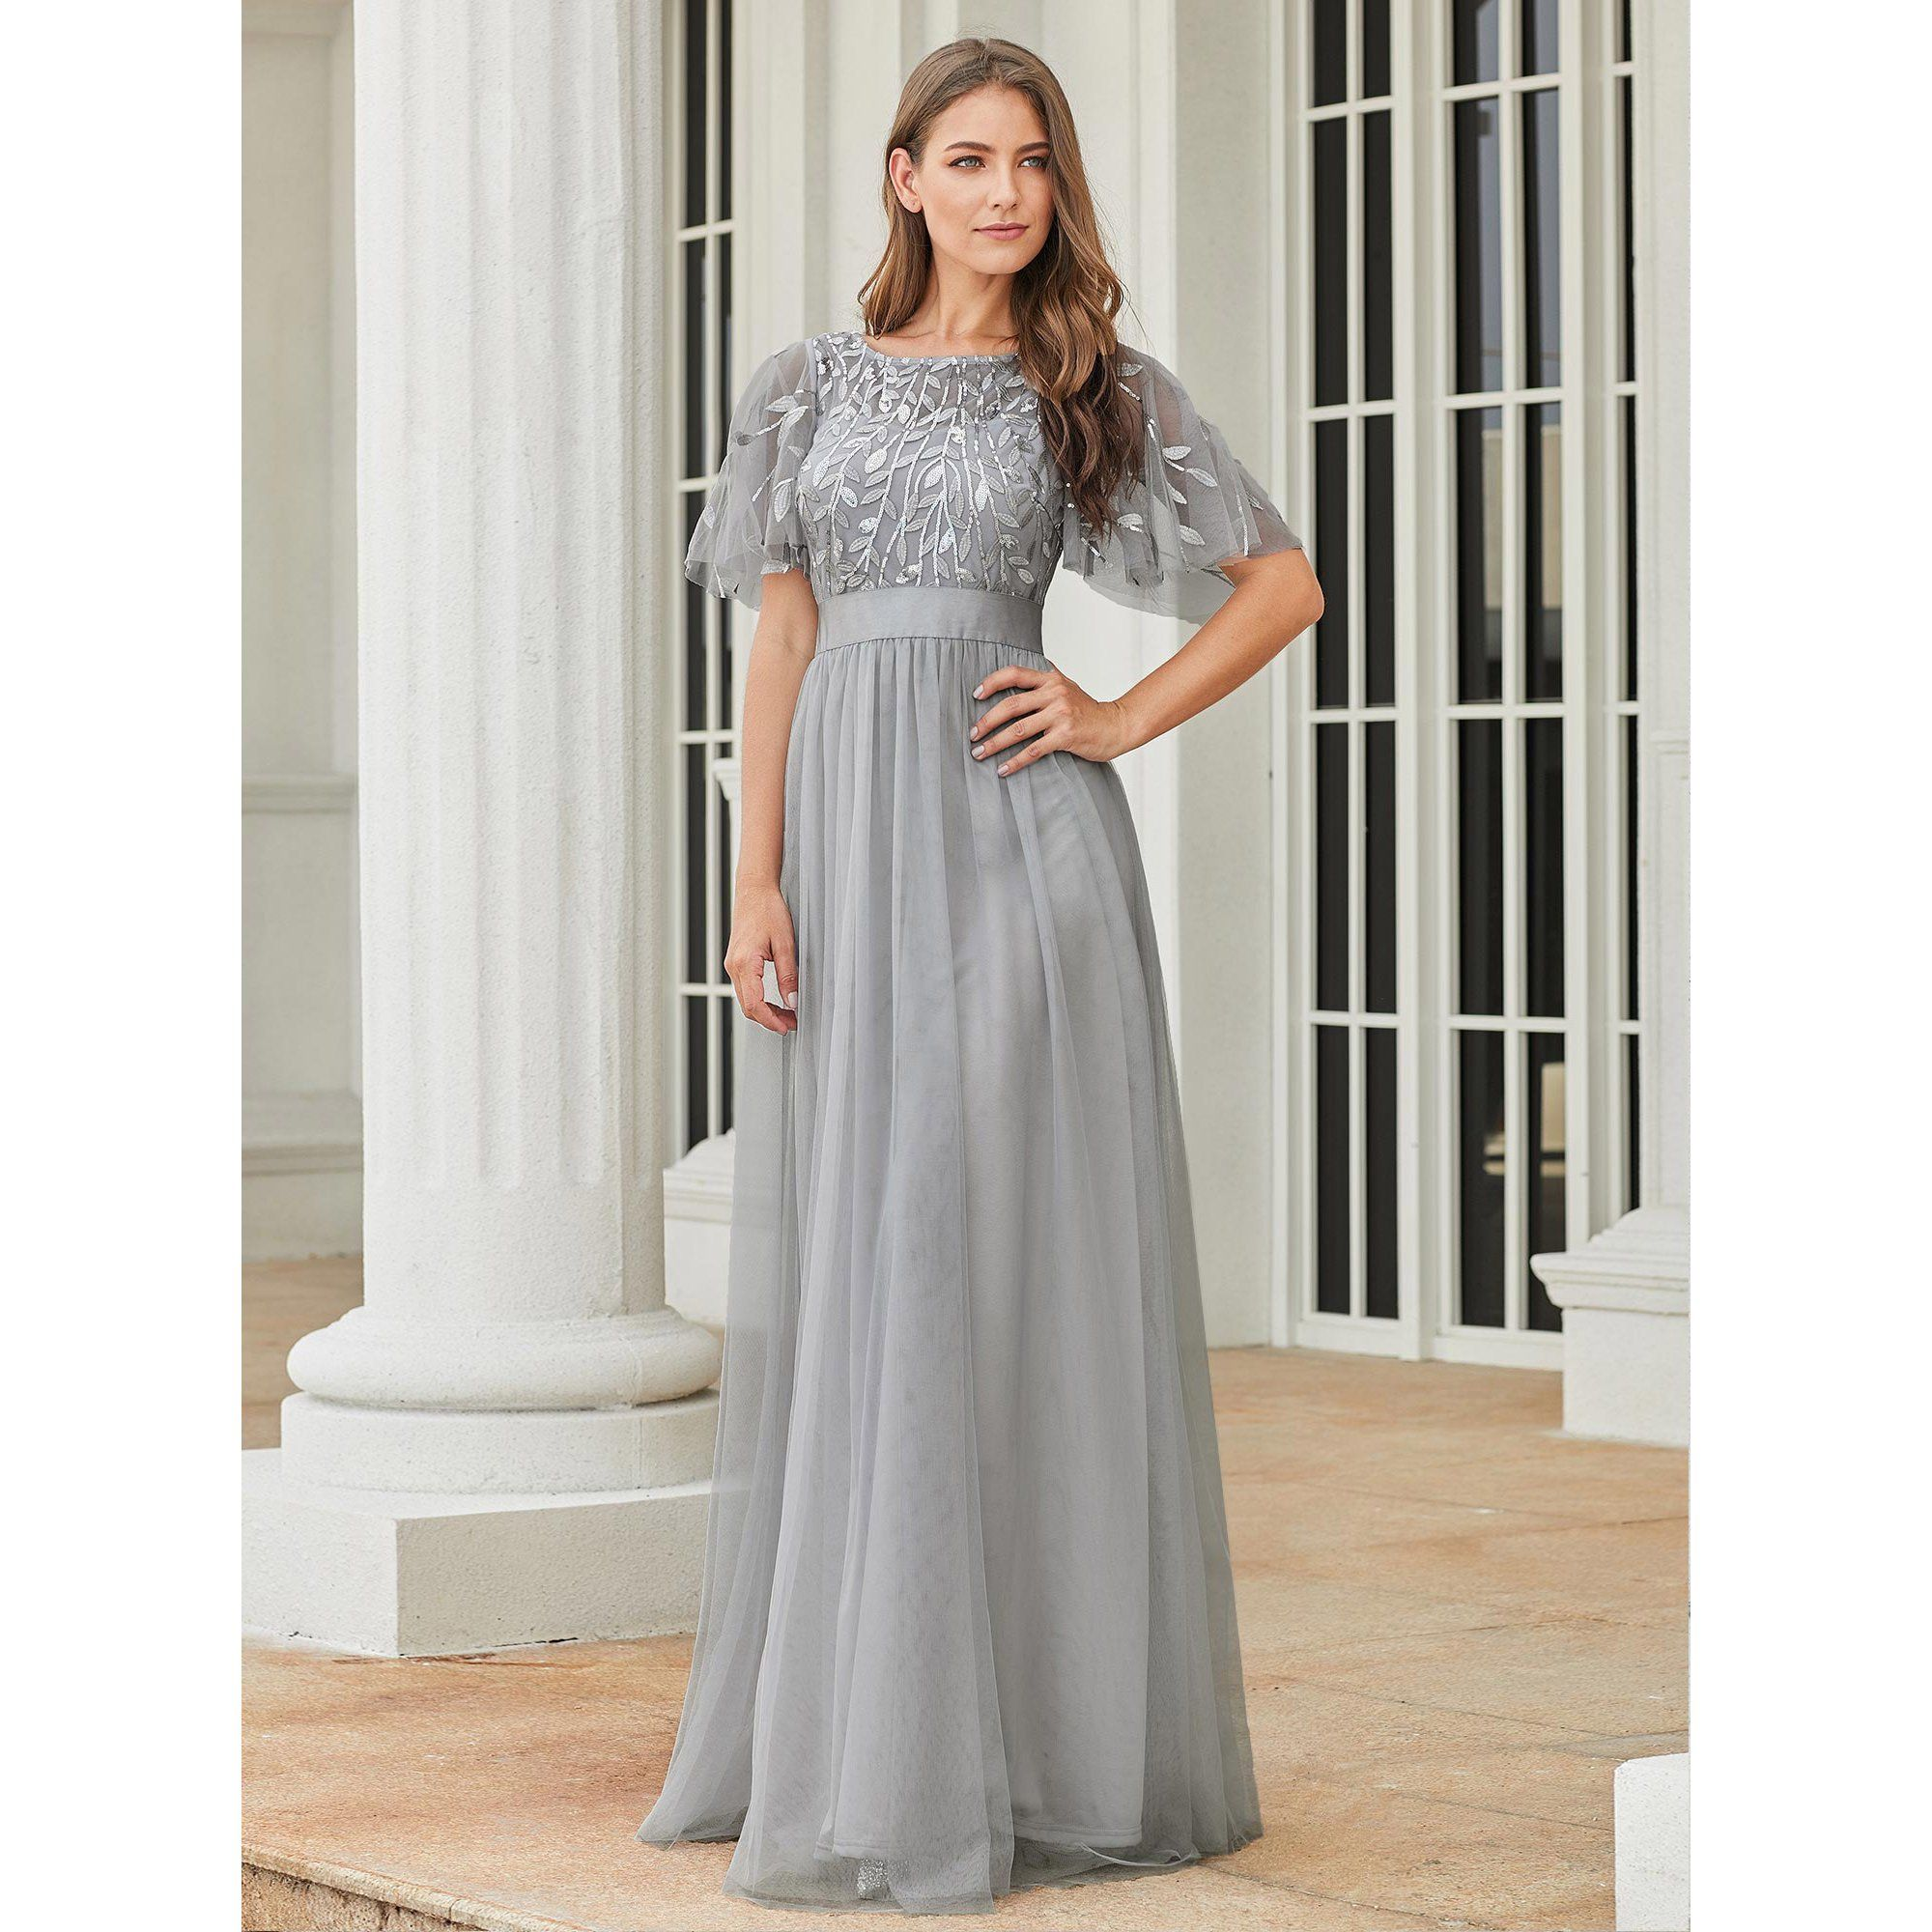 Ever Pretty Ever Pretty Womens Plus Size Bridesmaid Dresses For Women 00904 Grey In 2021 Evening Dresses Long Bridesmaid Dresses Plus Size Beautiful Evening Dresses [ 2000 x 2000 Pixel ]